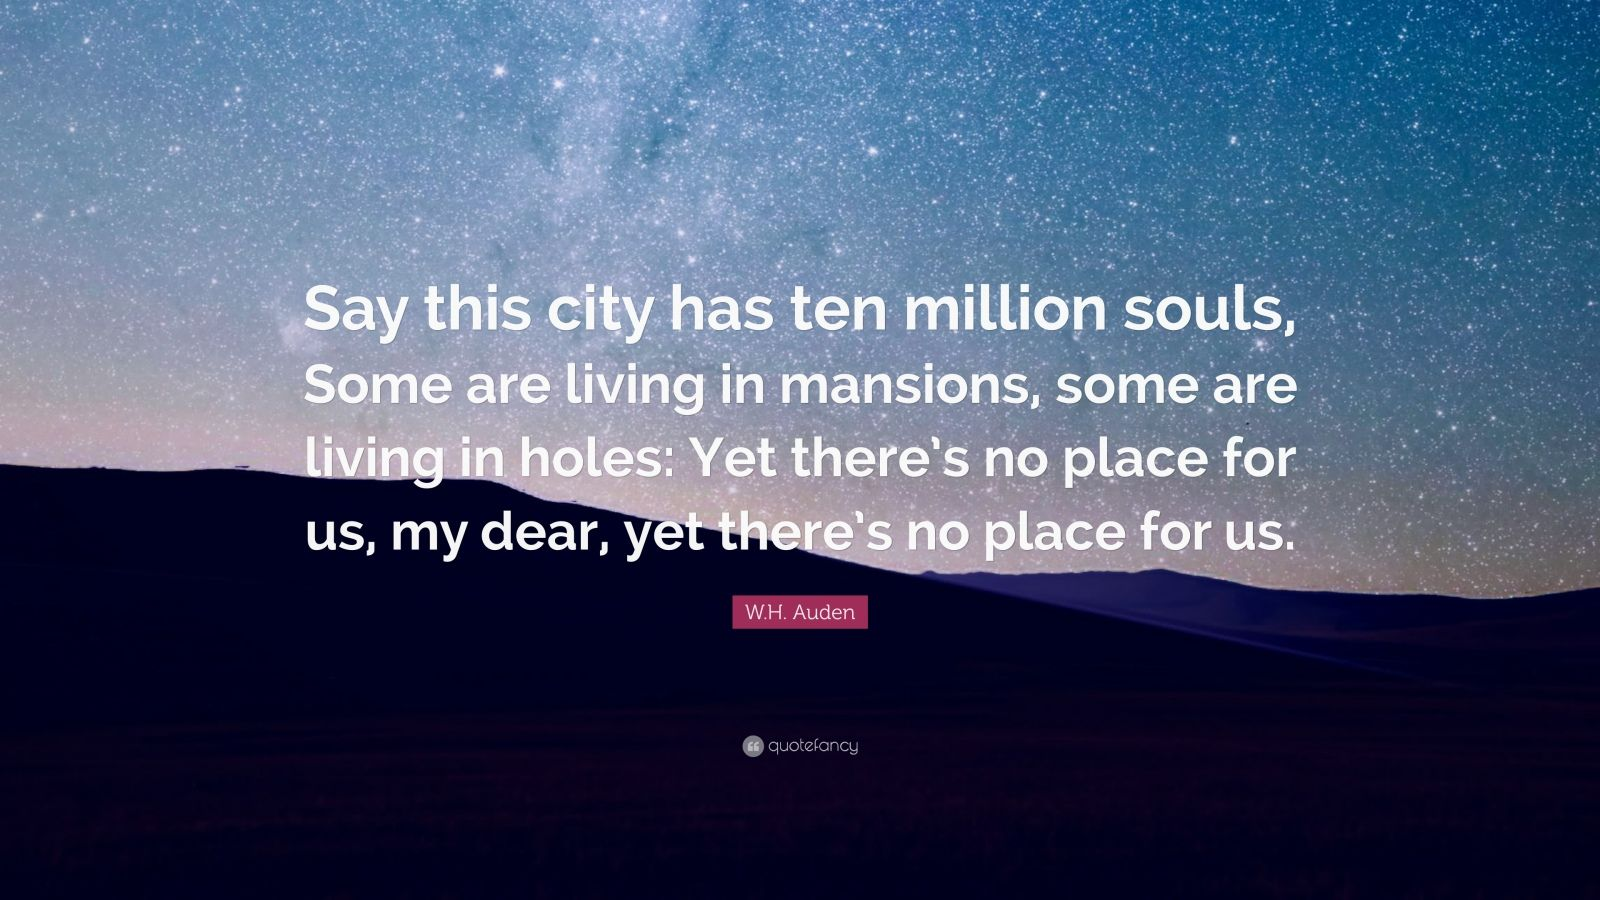 "W.H. Auden Quote: ""Say this city has ten million souls, Some are living in mansions, some are living in holes: Yet there's no place for us, my dear, yet there's no place for us."""